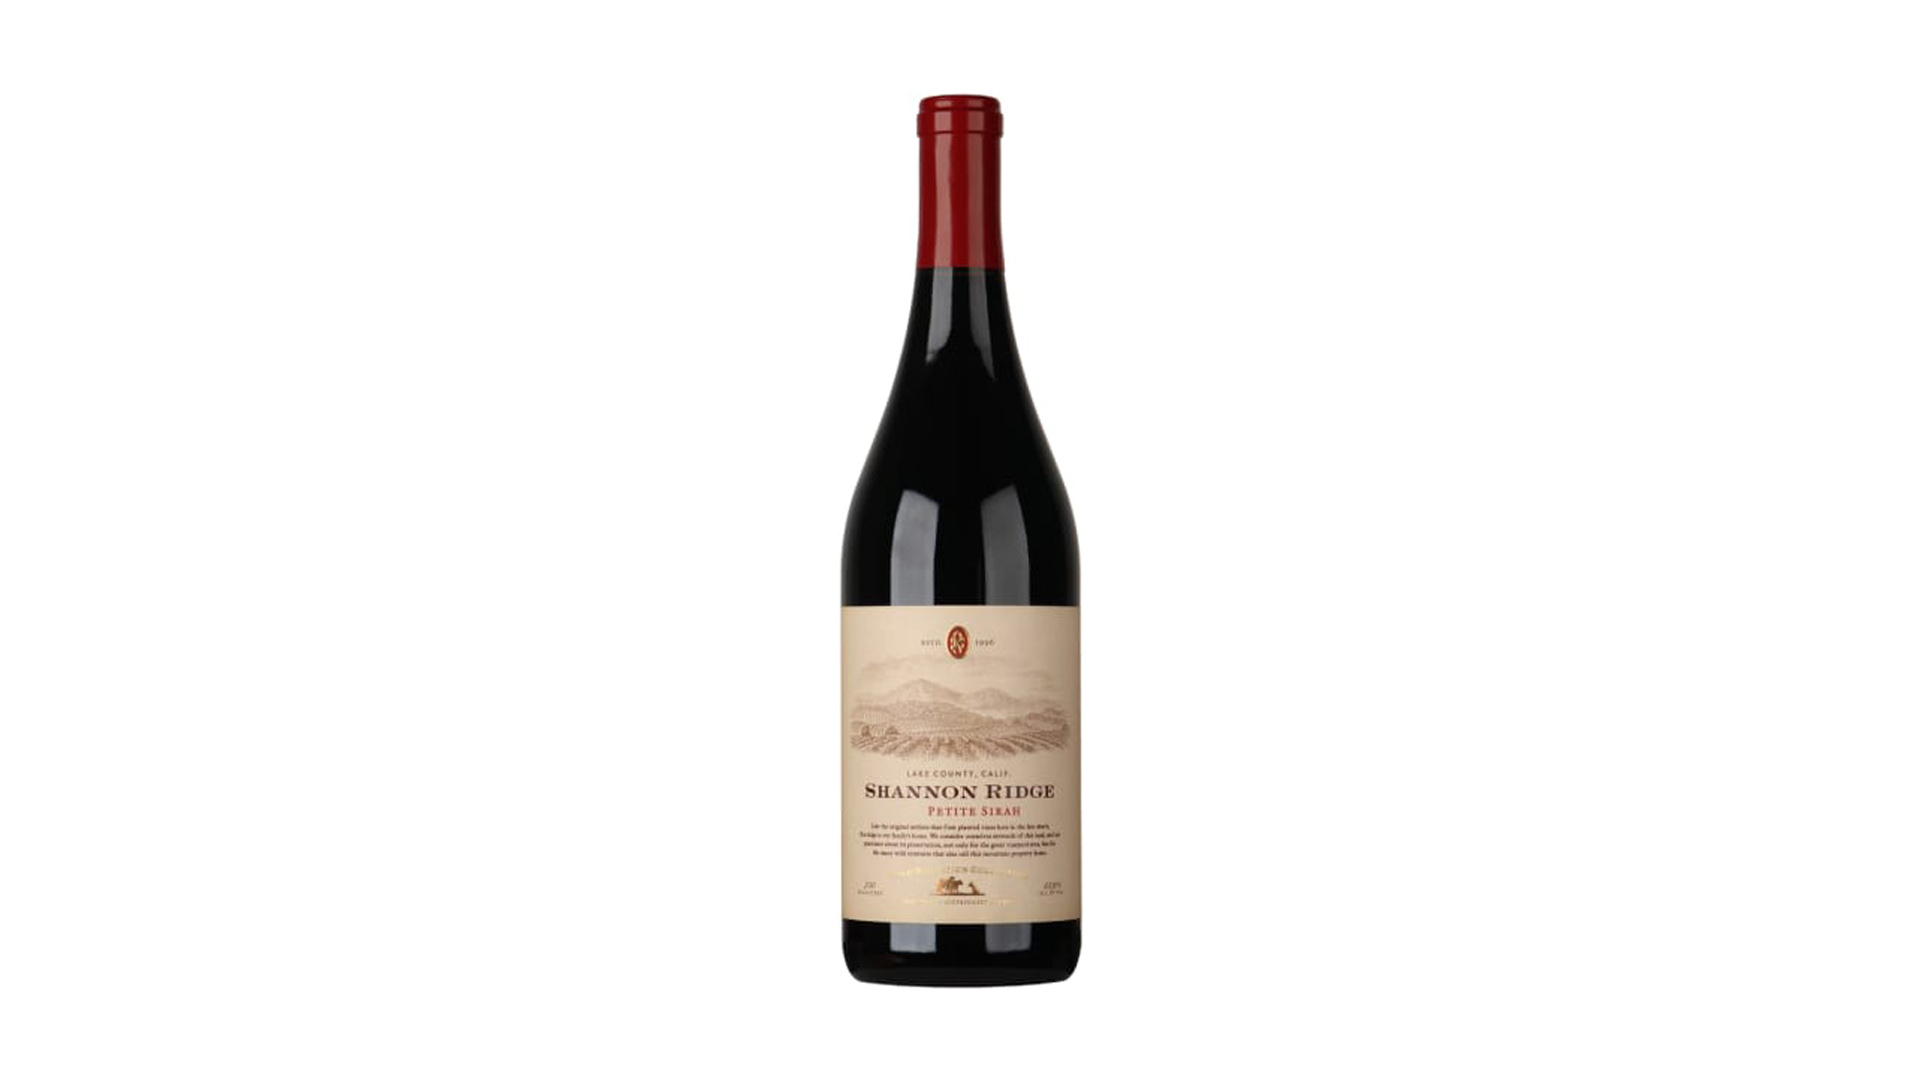 Shannon Ridge High Elevation Petite Sirah 2017 is one of 5 delightful wines special offers